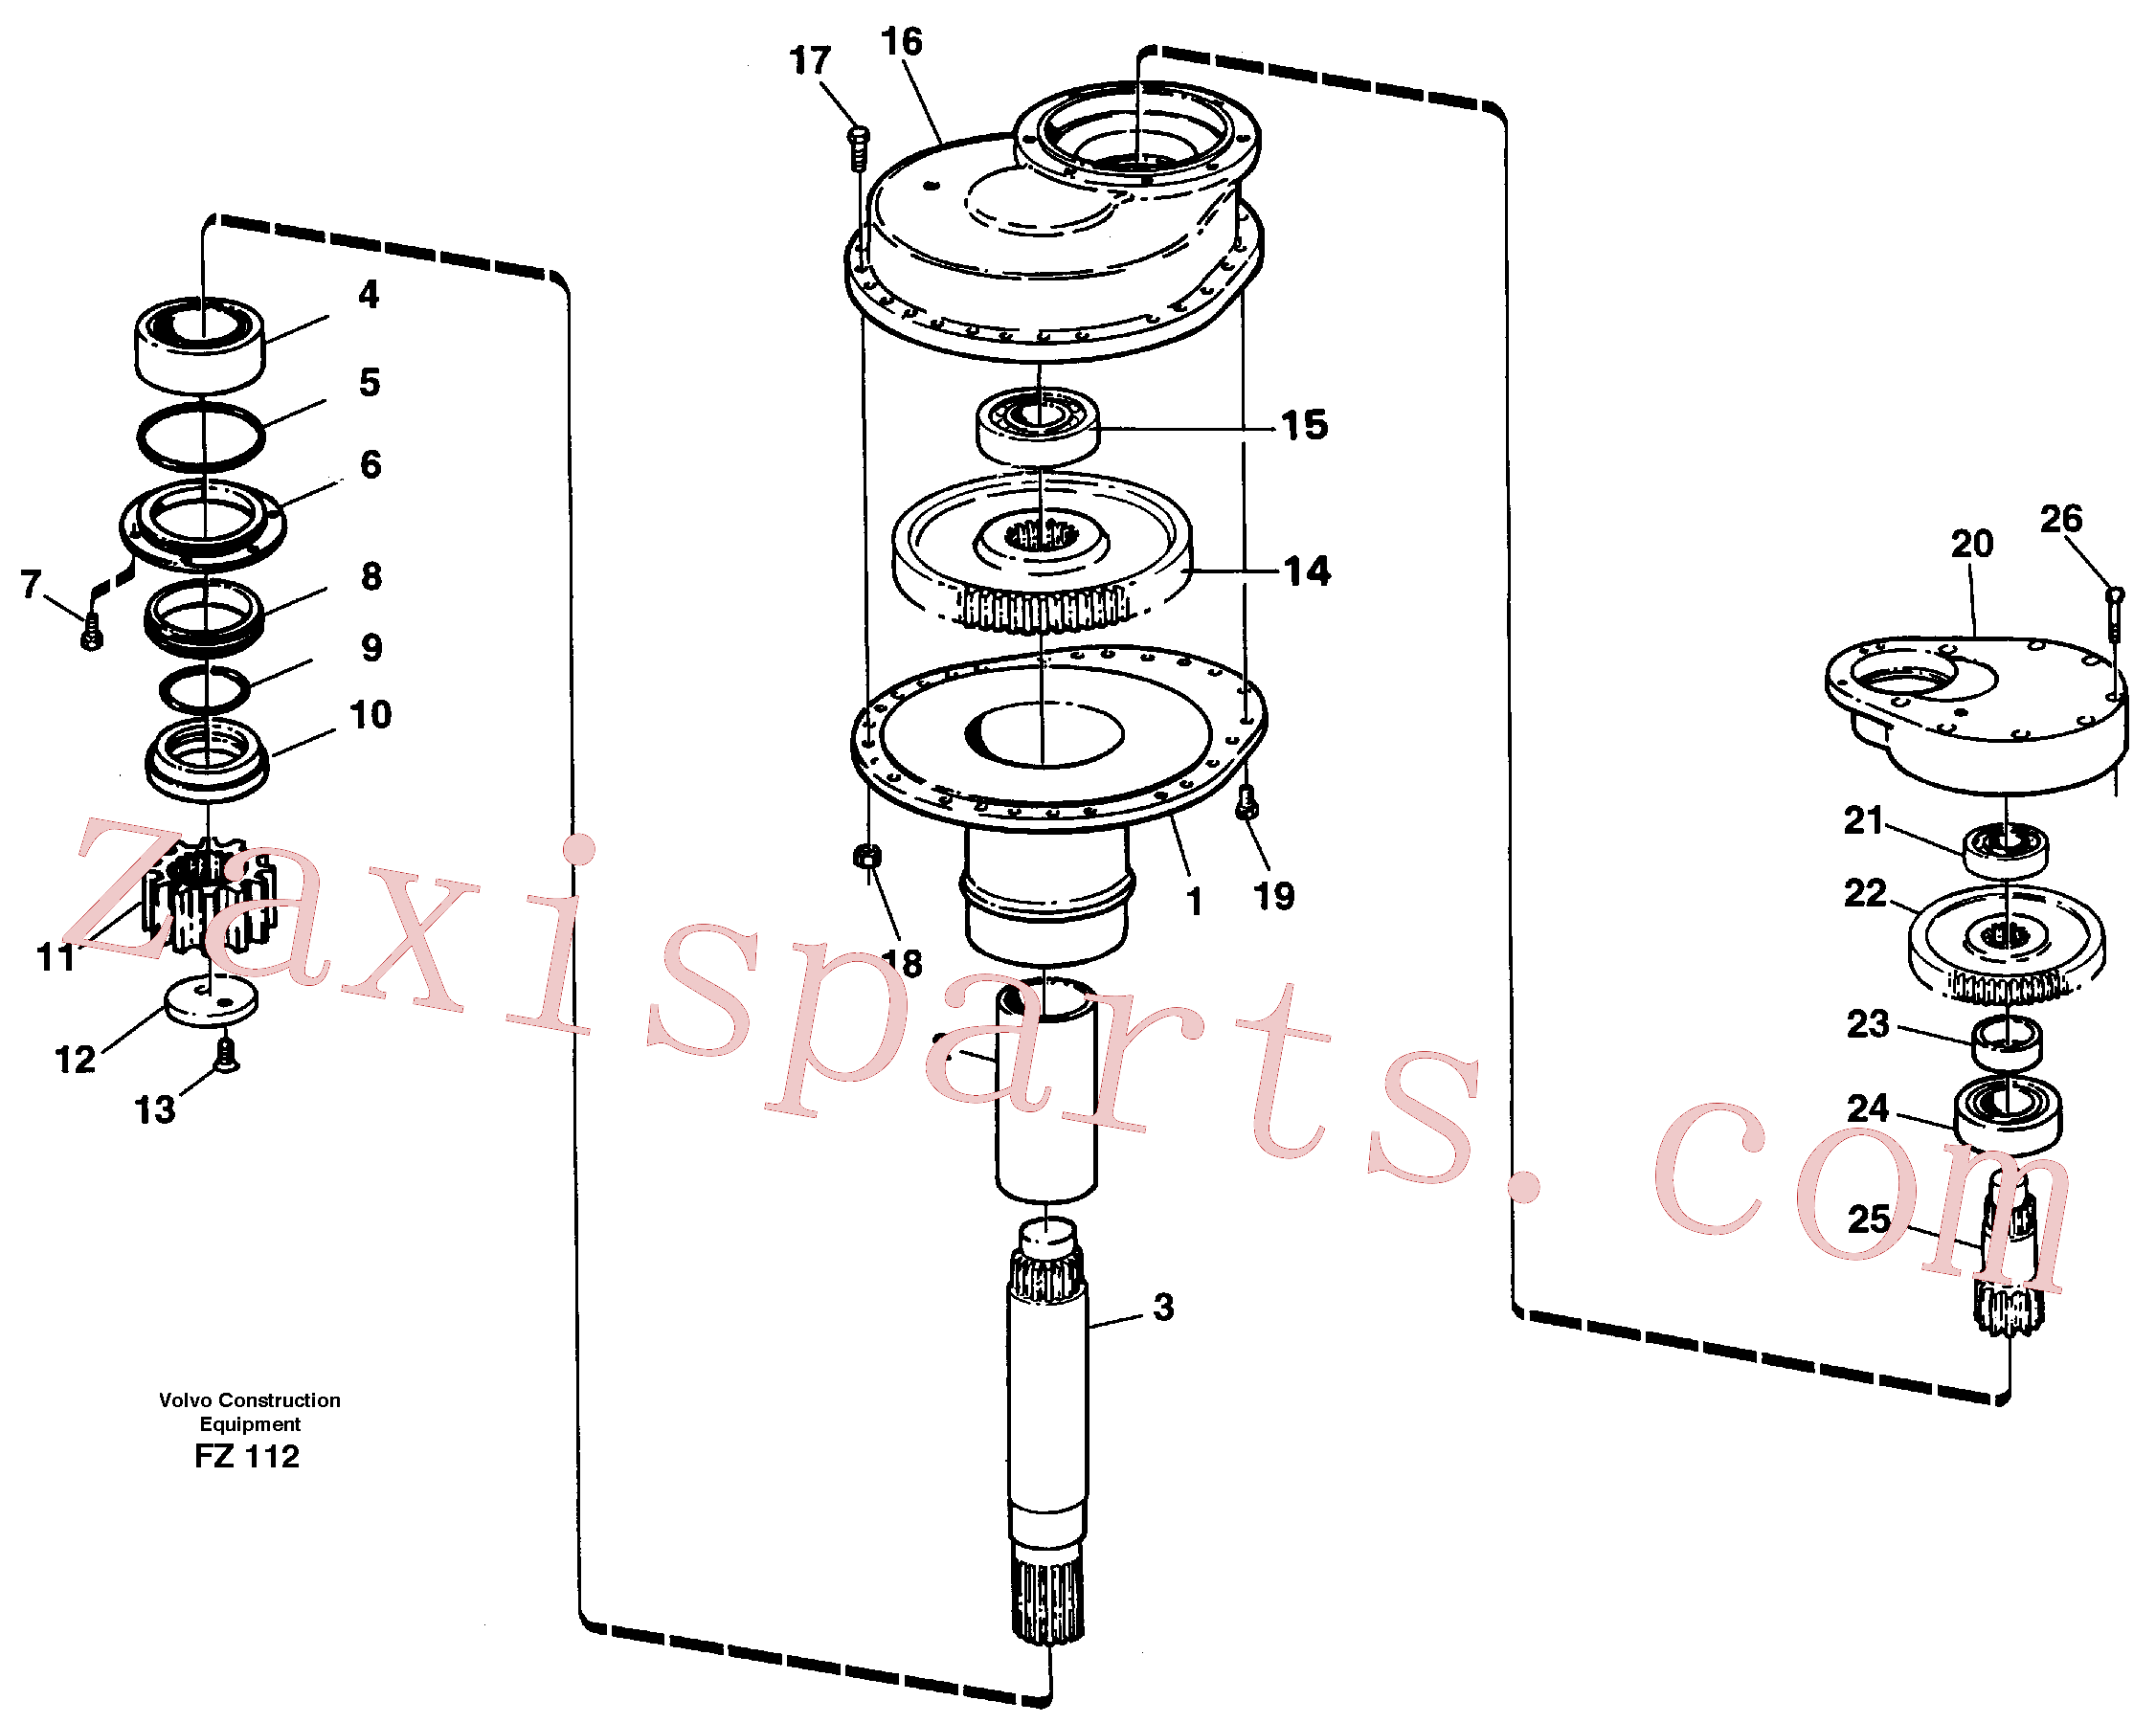 VOE14014695 for Volvo Swing gearbox(FZ112 assembly)